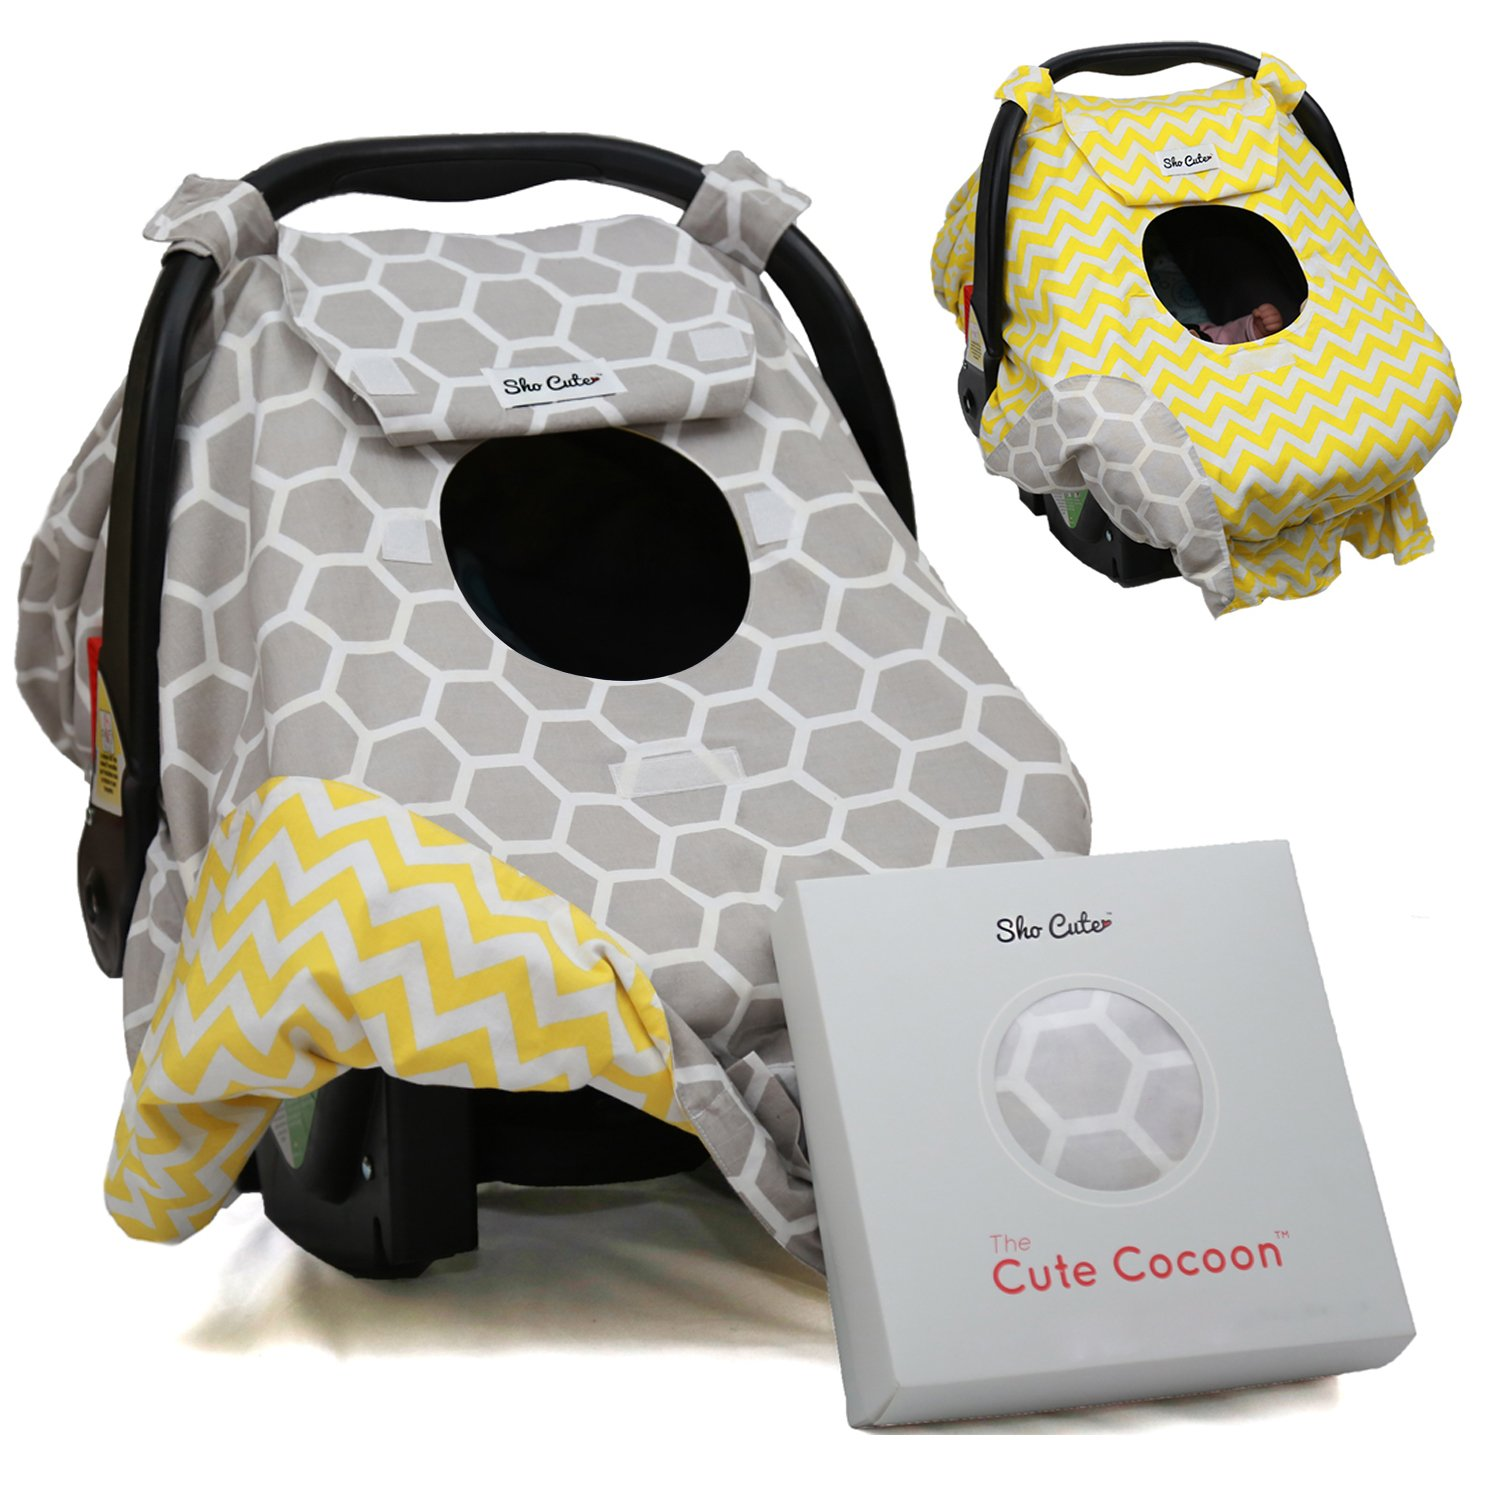 Sho Cute - [Reversible] Carseat Canopy | All Season Baby Car Seat Cover Boy or Girl | 100% Cotton | Unisex Grey Honeycomb & Yellow Chevron | Nursing Cover | Universal Fit | Baby Gift -Patent Pending Sho Cute Inc.